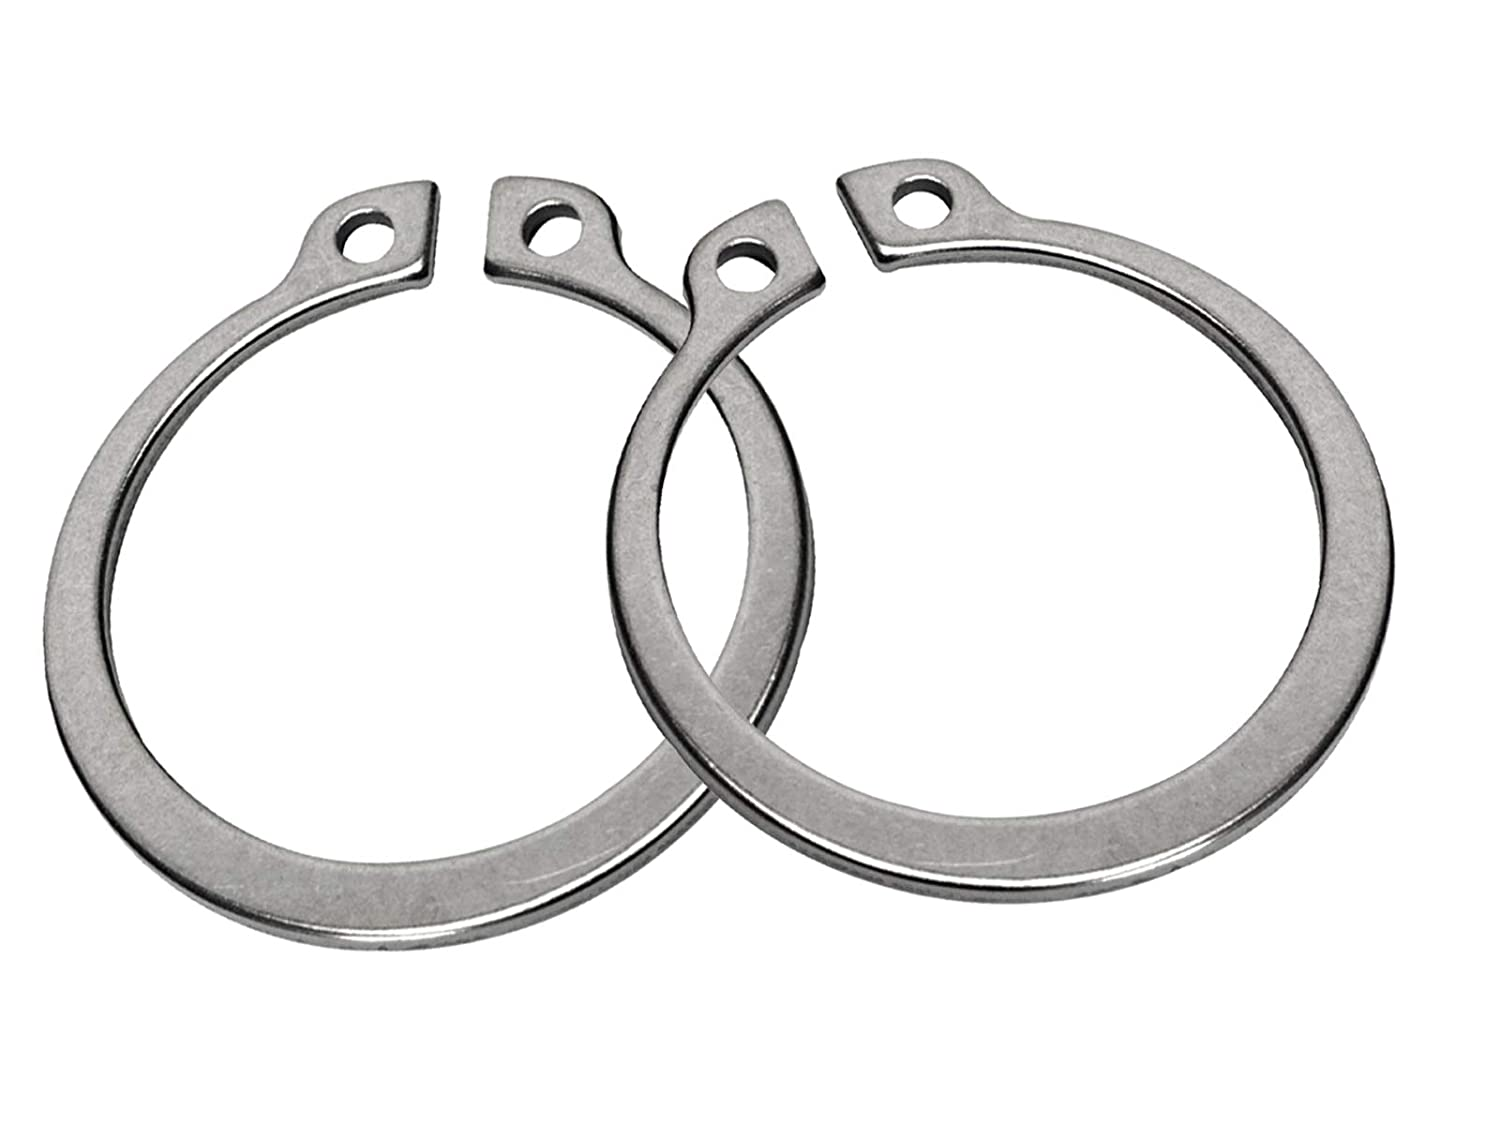 Noa Store Retaining Clips//Rings #32262